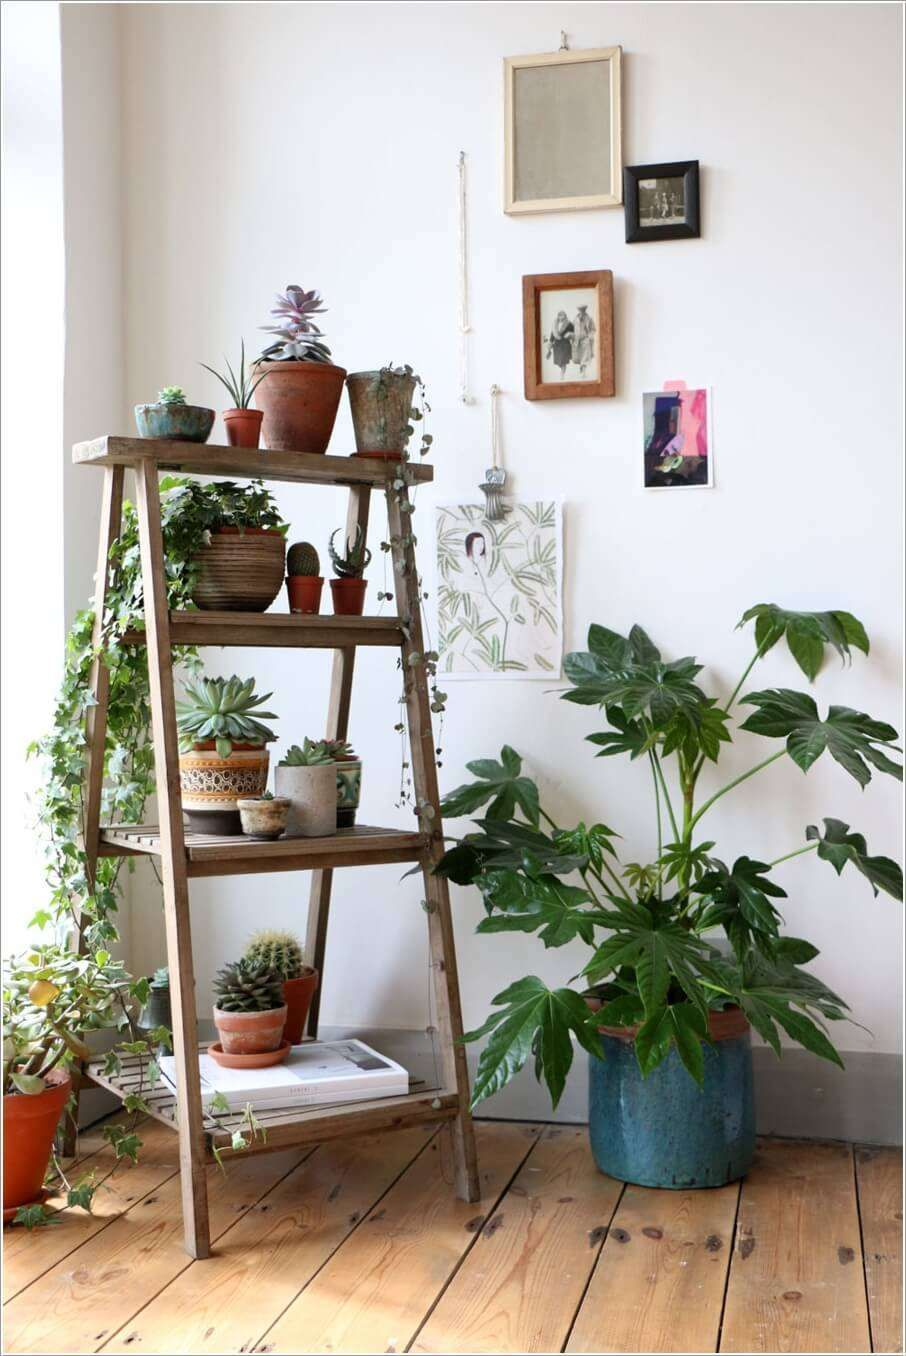 Ad Amazing Ideas For Indoor Plants 05 12 Creative How To Display Your